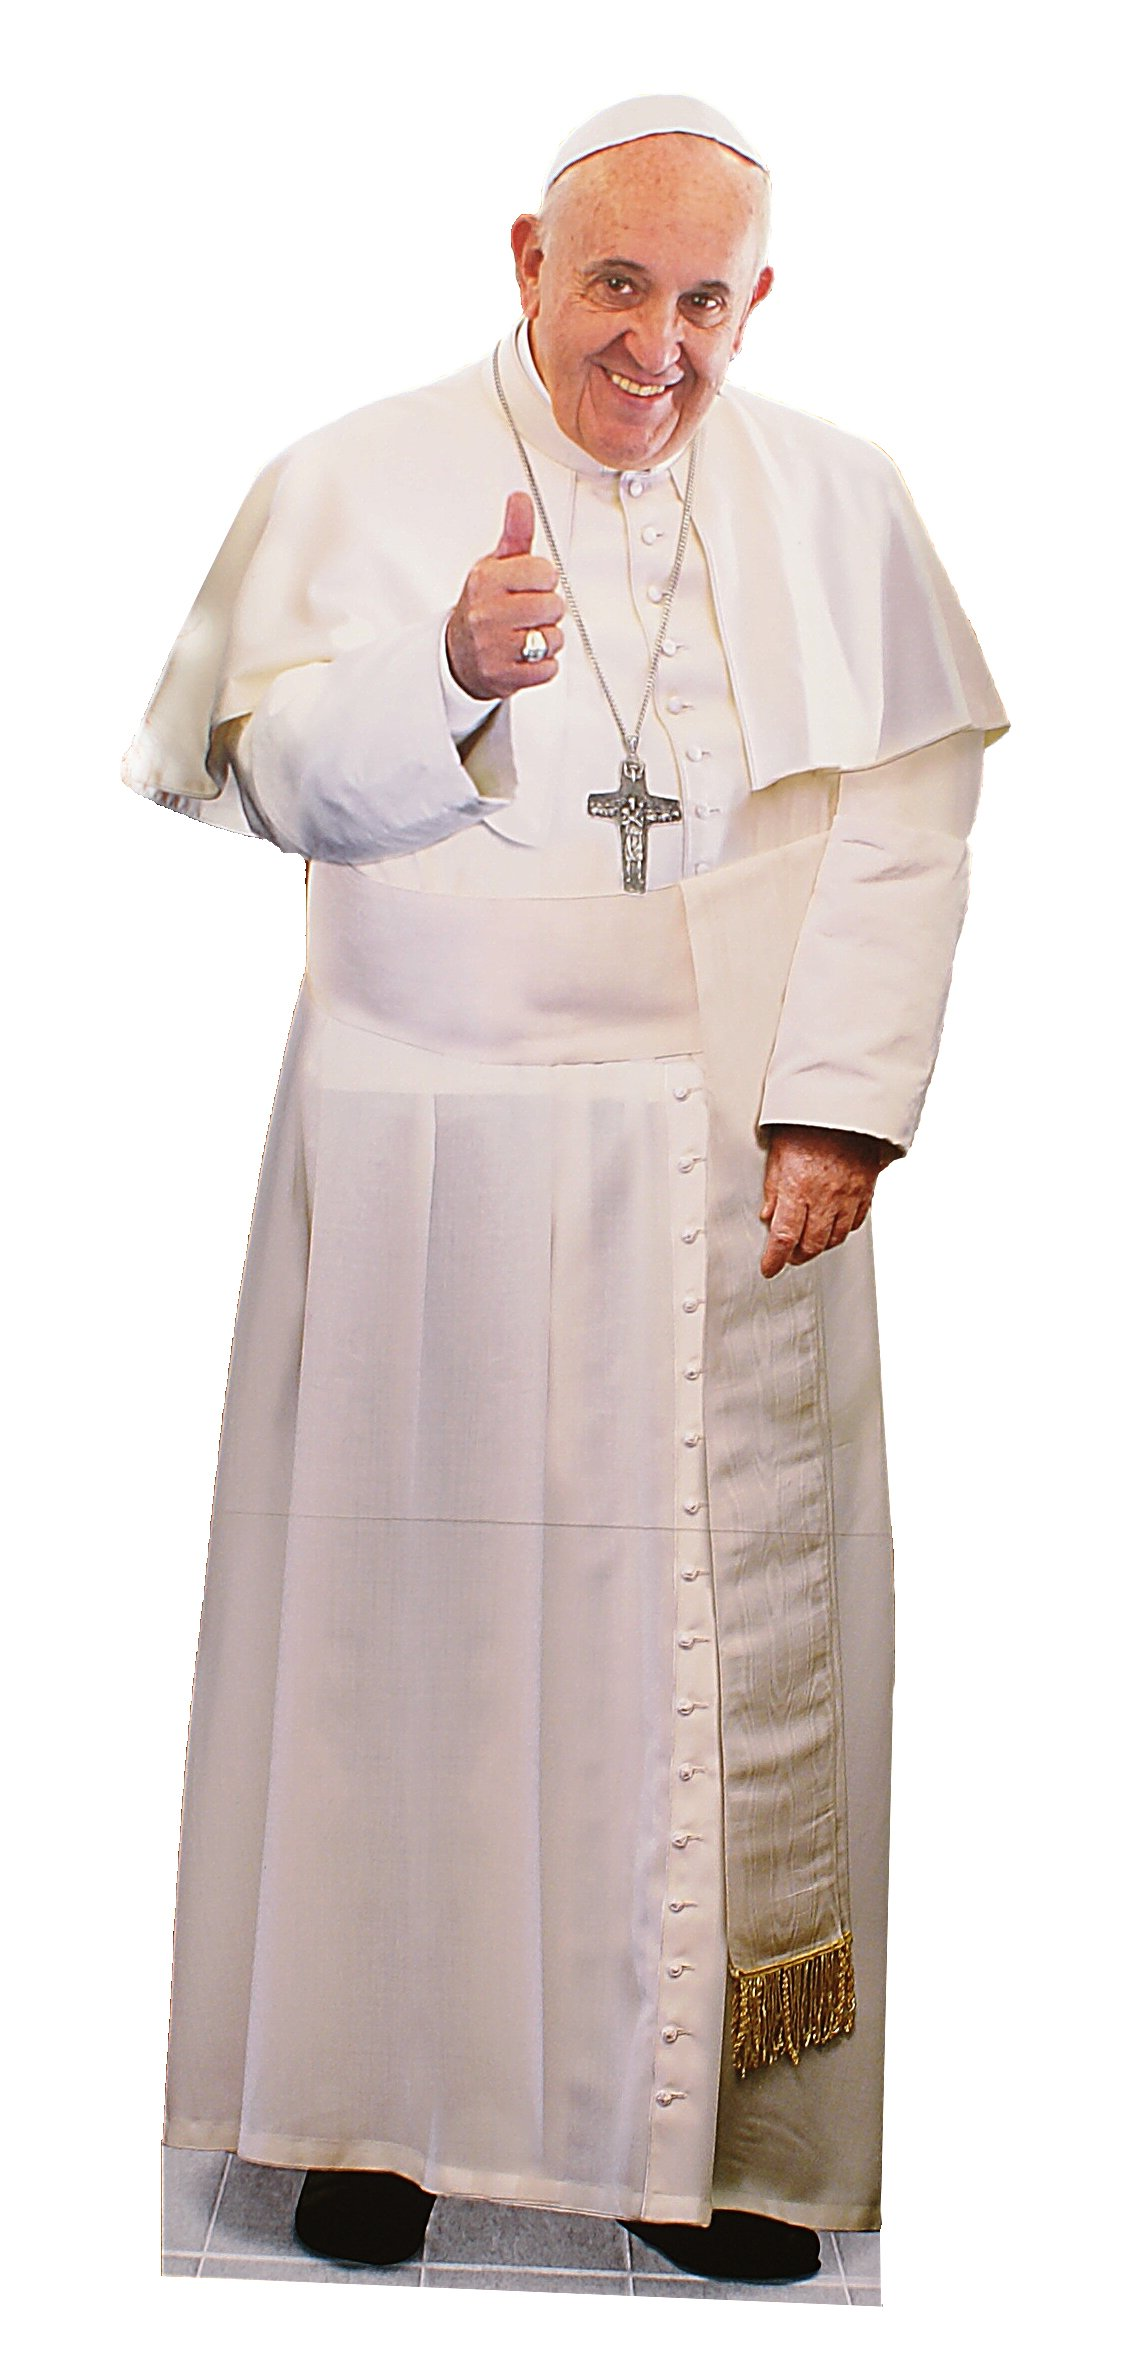 Pope Francis Thumbs Up Lifesize Cutout Standee